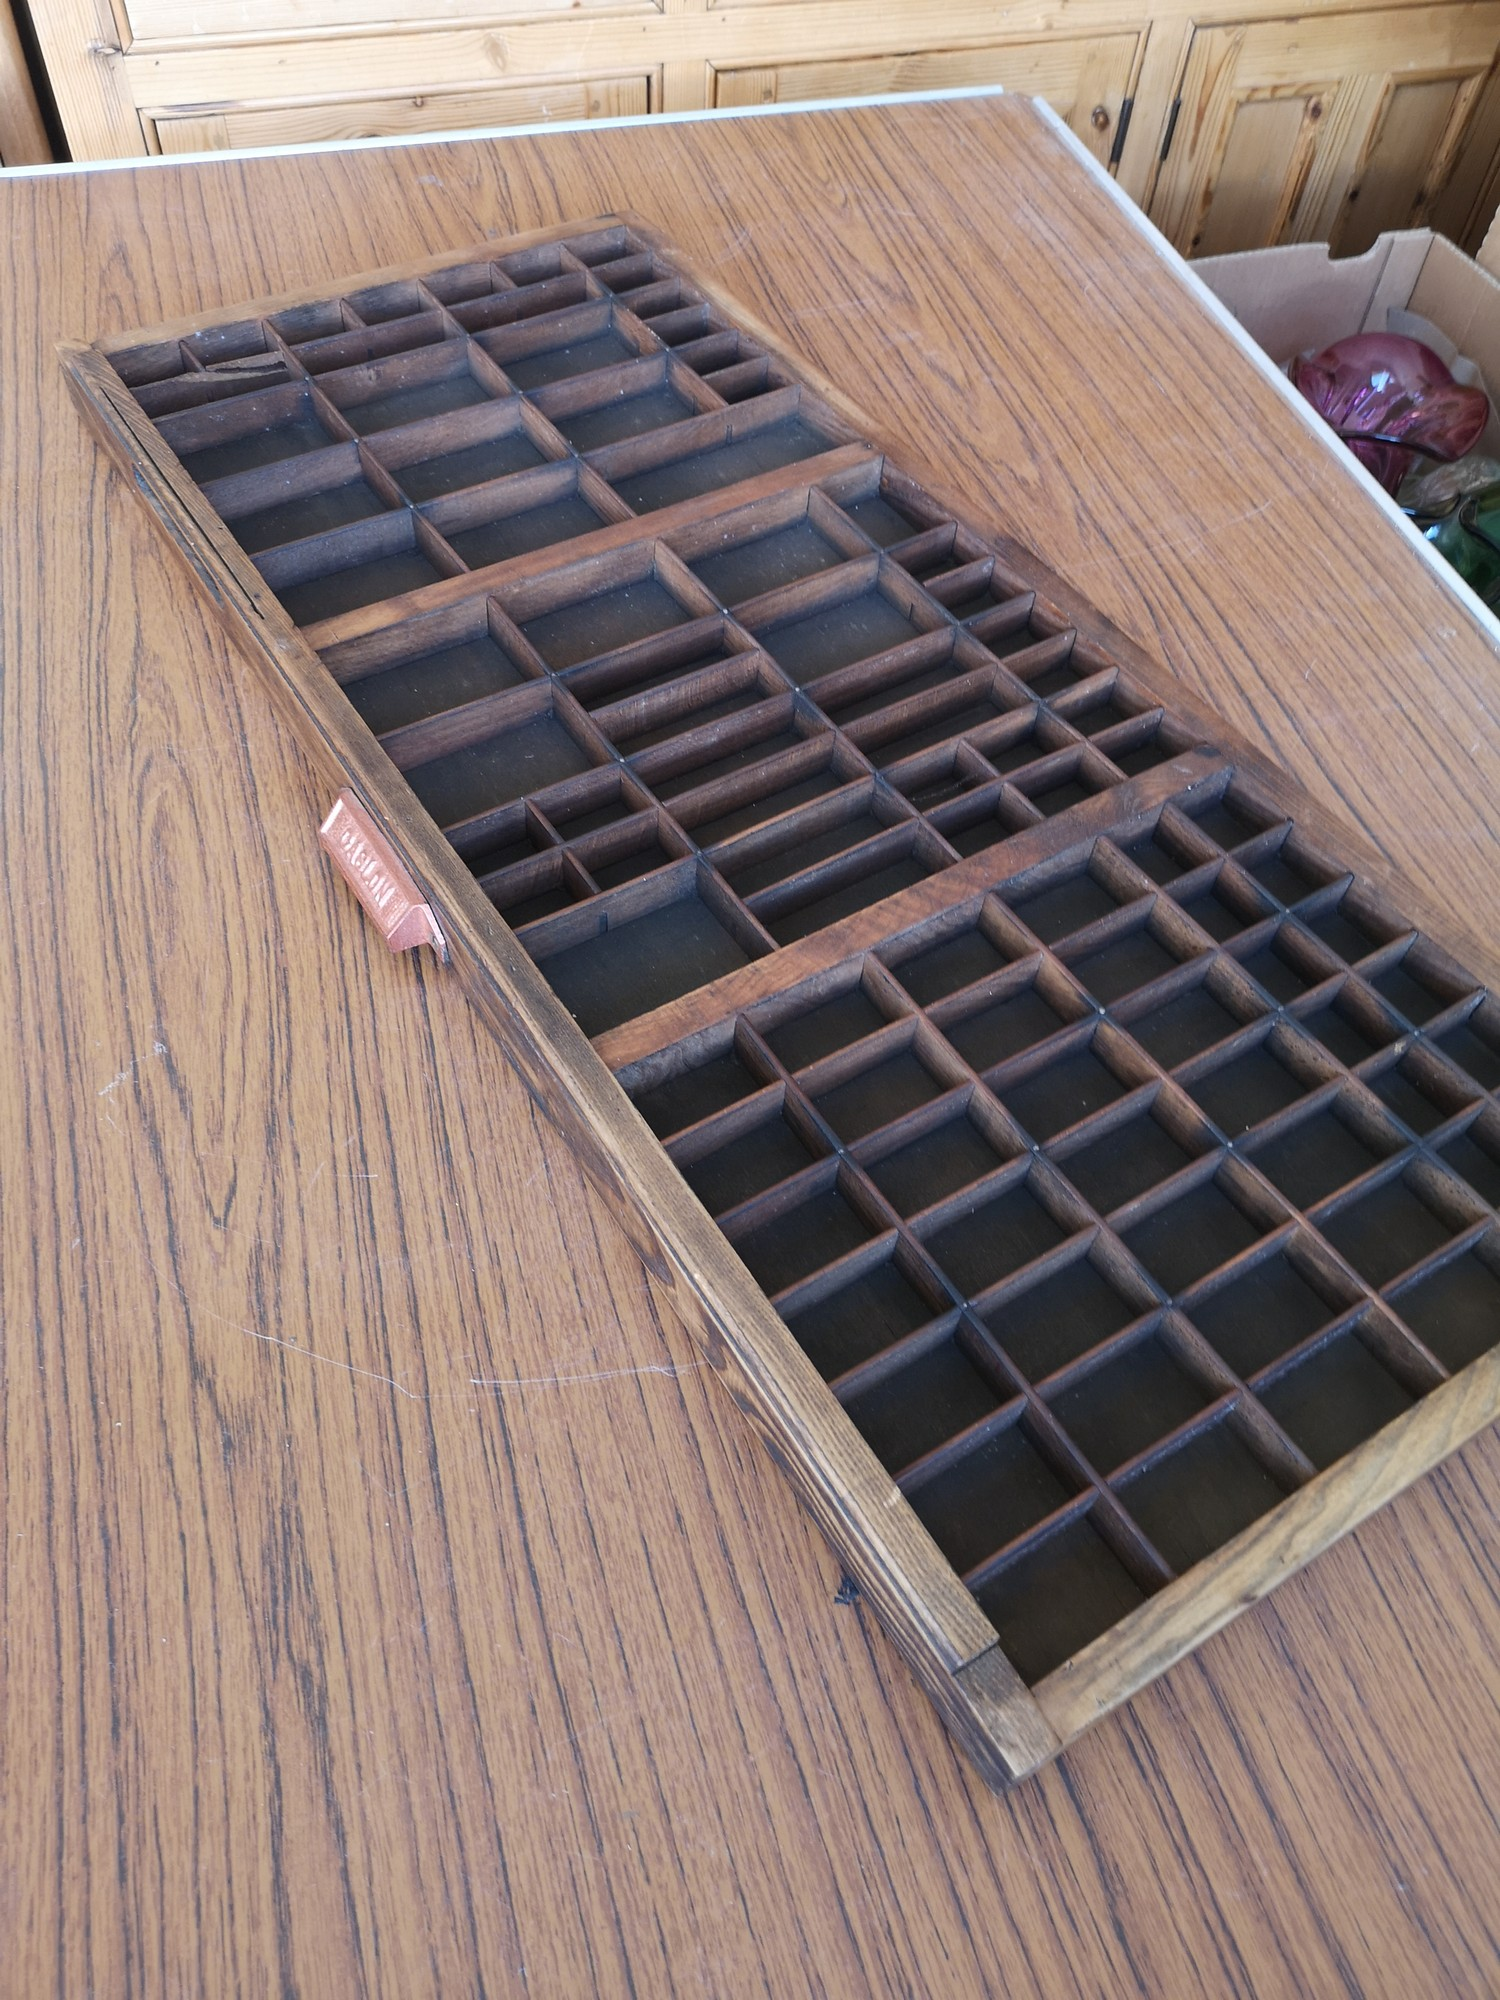 Vintage adana print block / paint tool together with print block drawer etc. - Image 4 of 4